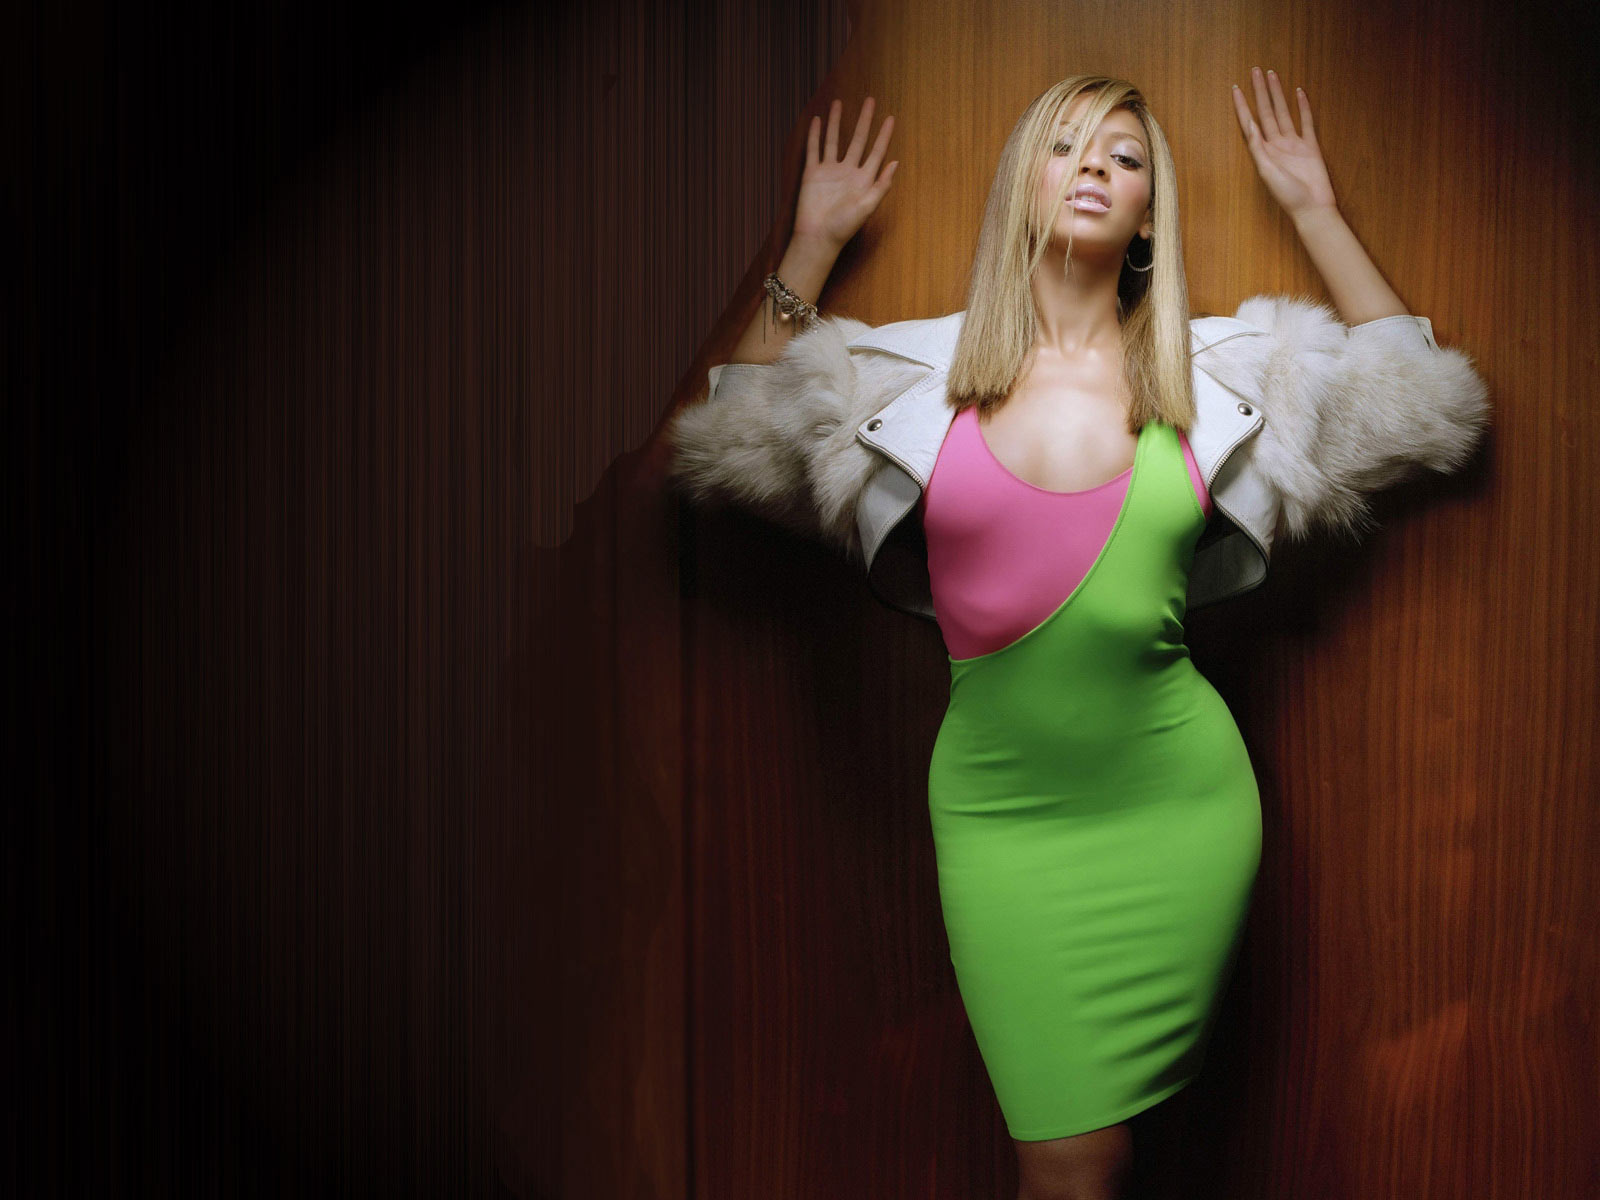 Beyonce Achtergronden Knowles 2011 Trends Of Celebrity tqwZFOw